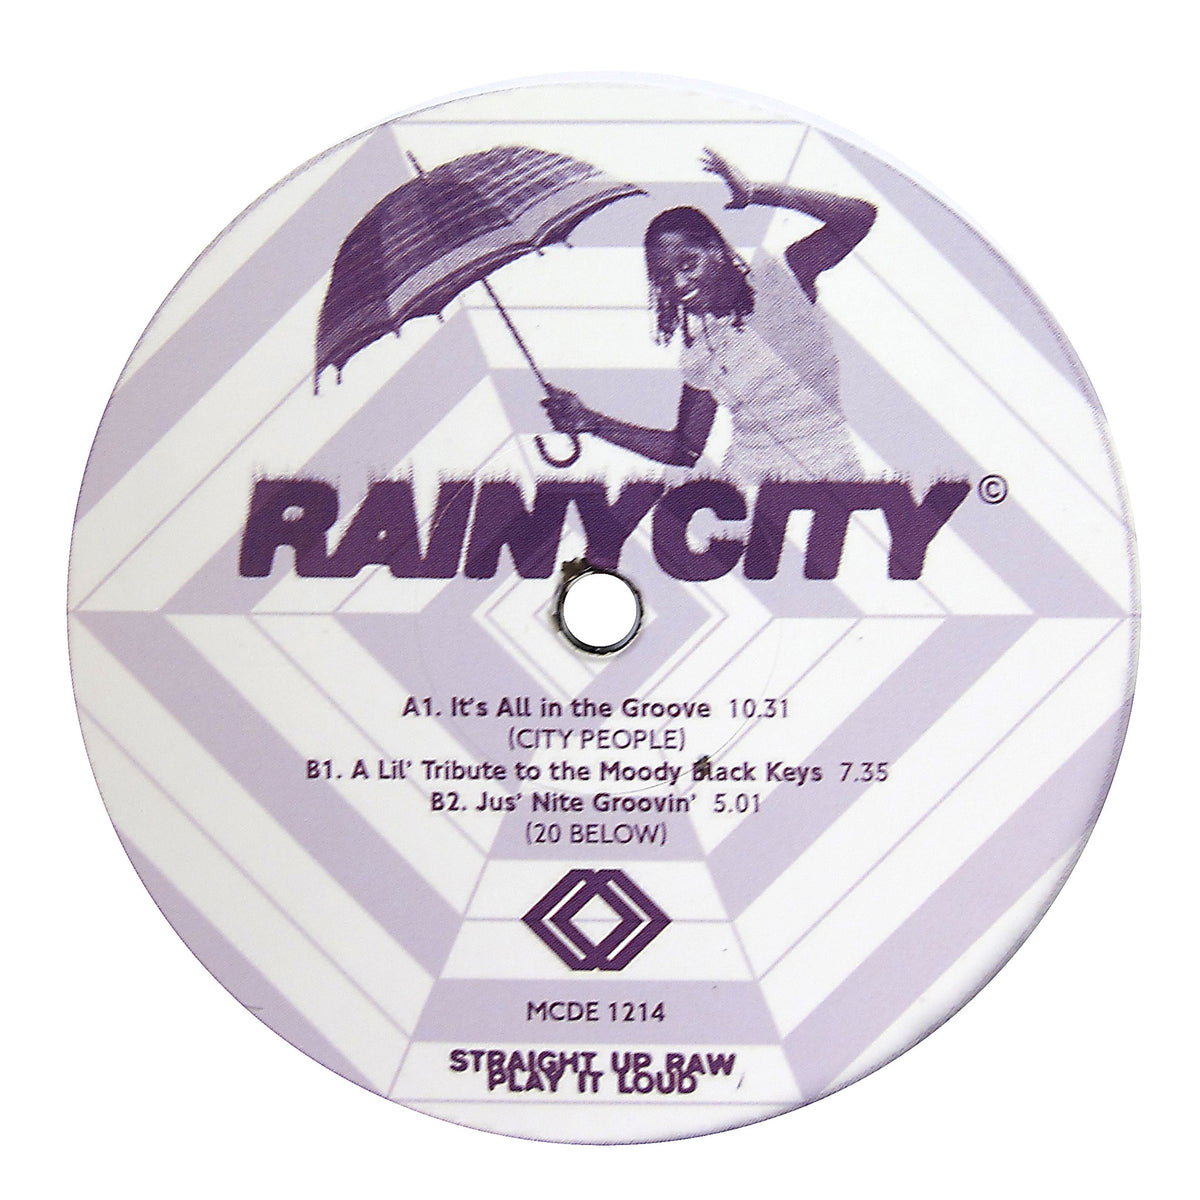 City People / 20 Below: It's All In The Groove / A Lil' Tribute To The Moody Black Keys Vinyl 12""